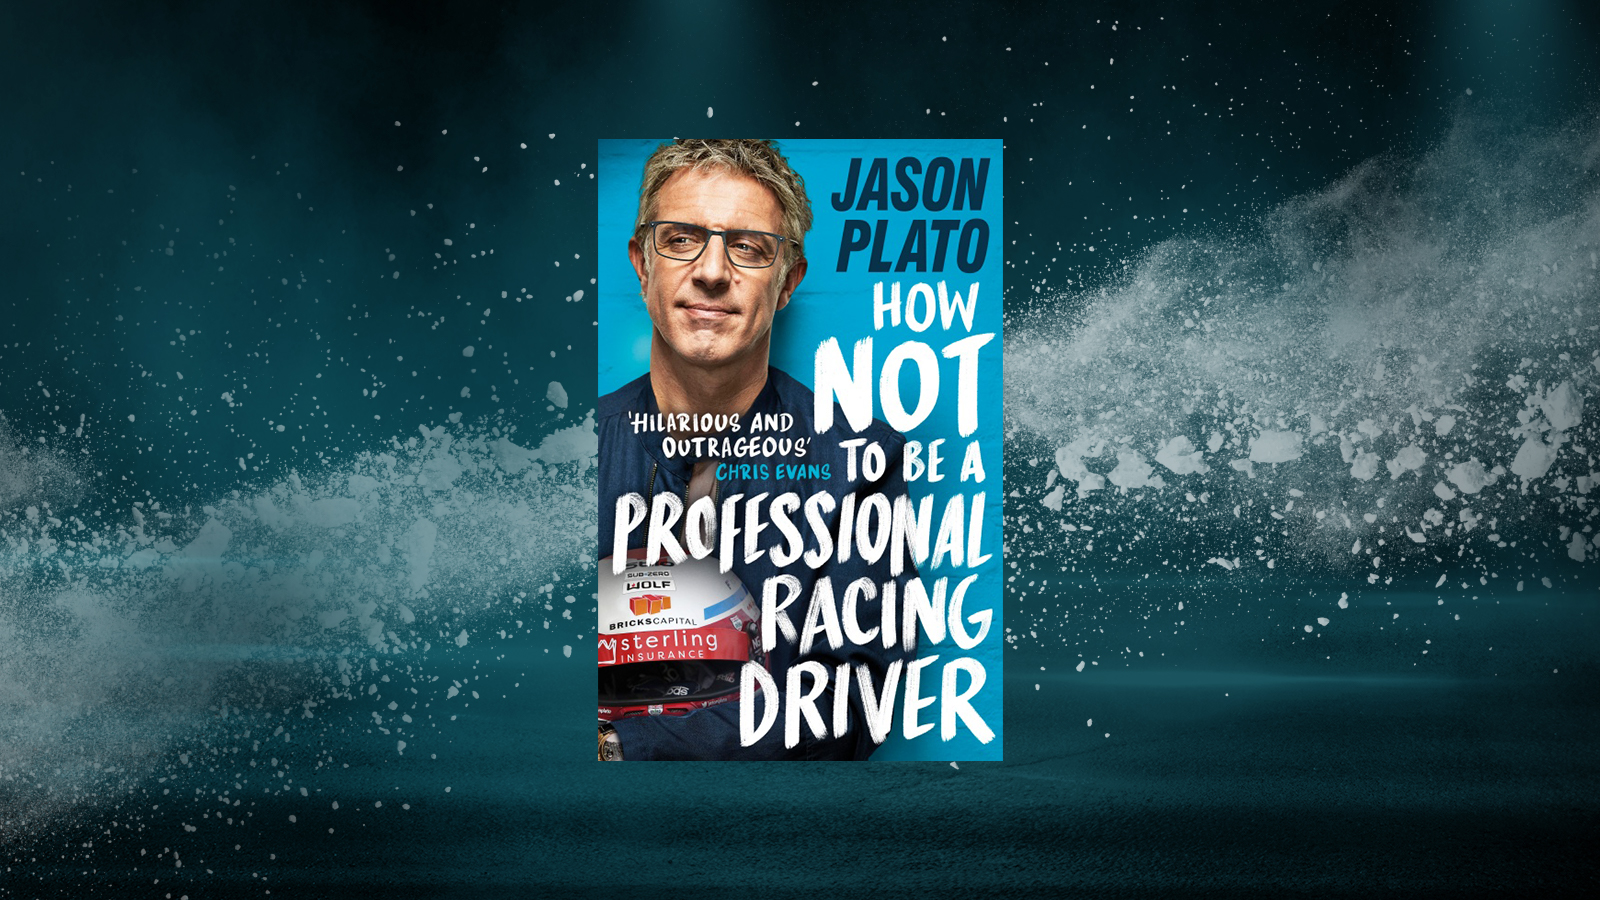 Interview with James Hogg, Ghostwriters of Jason Plato's Autobiography 'How Not to be a Professional Racing Driver'